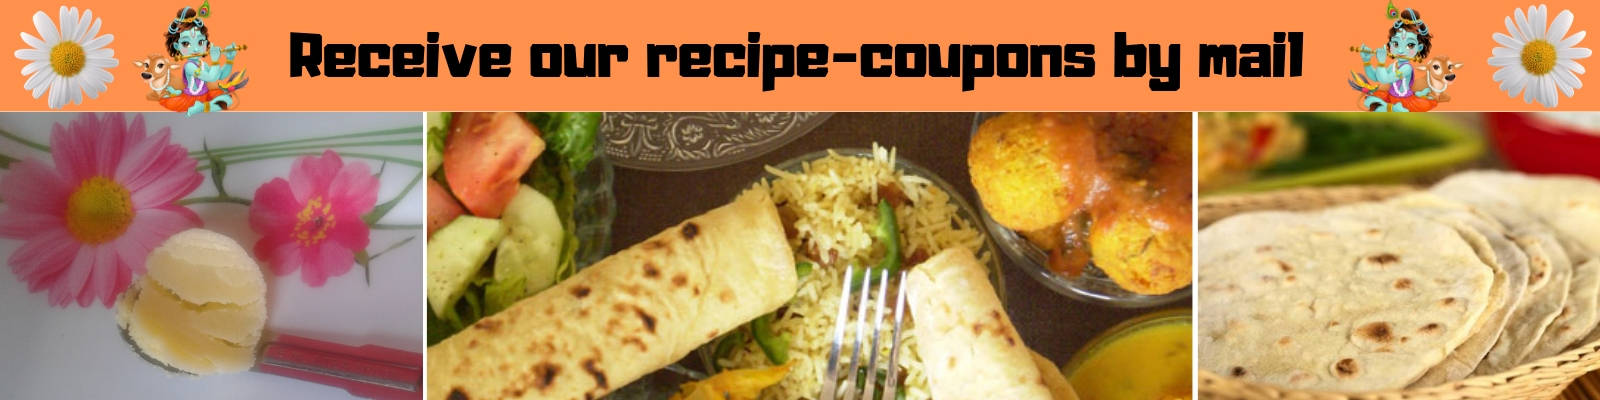 Coupon-recipe